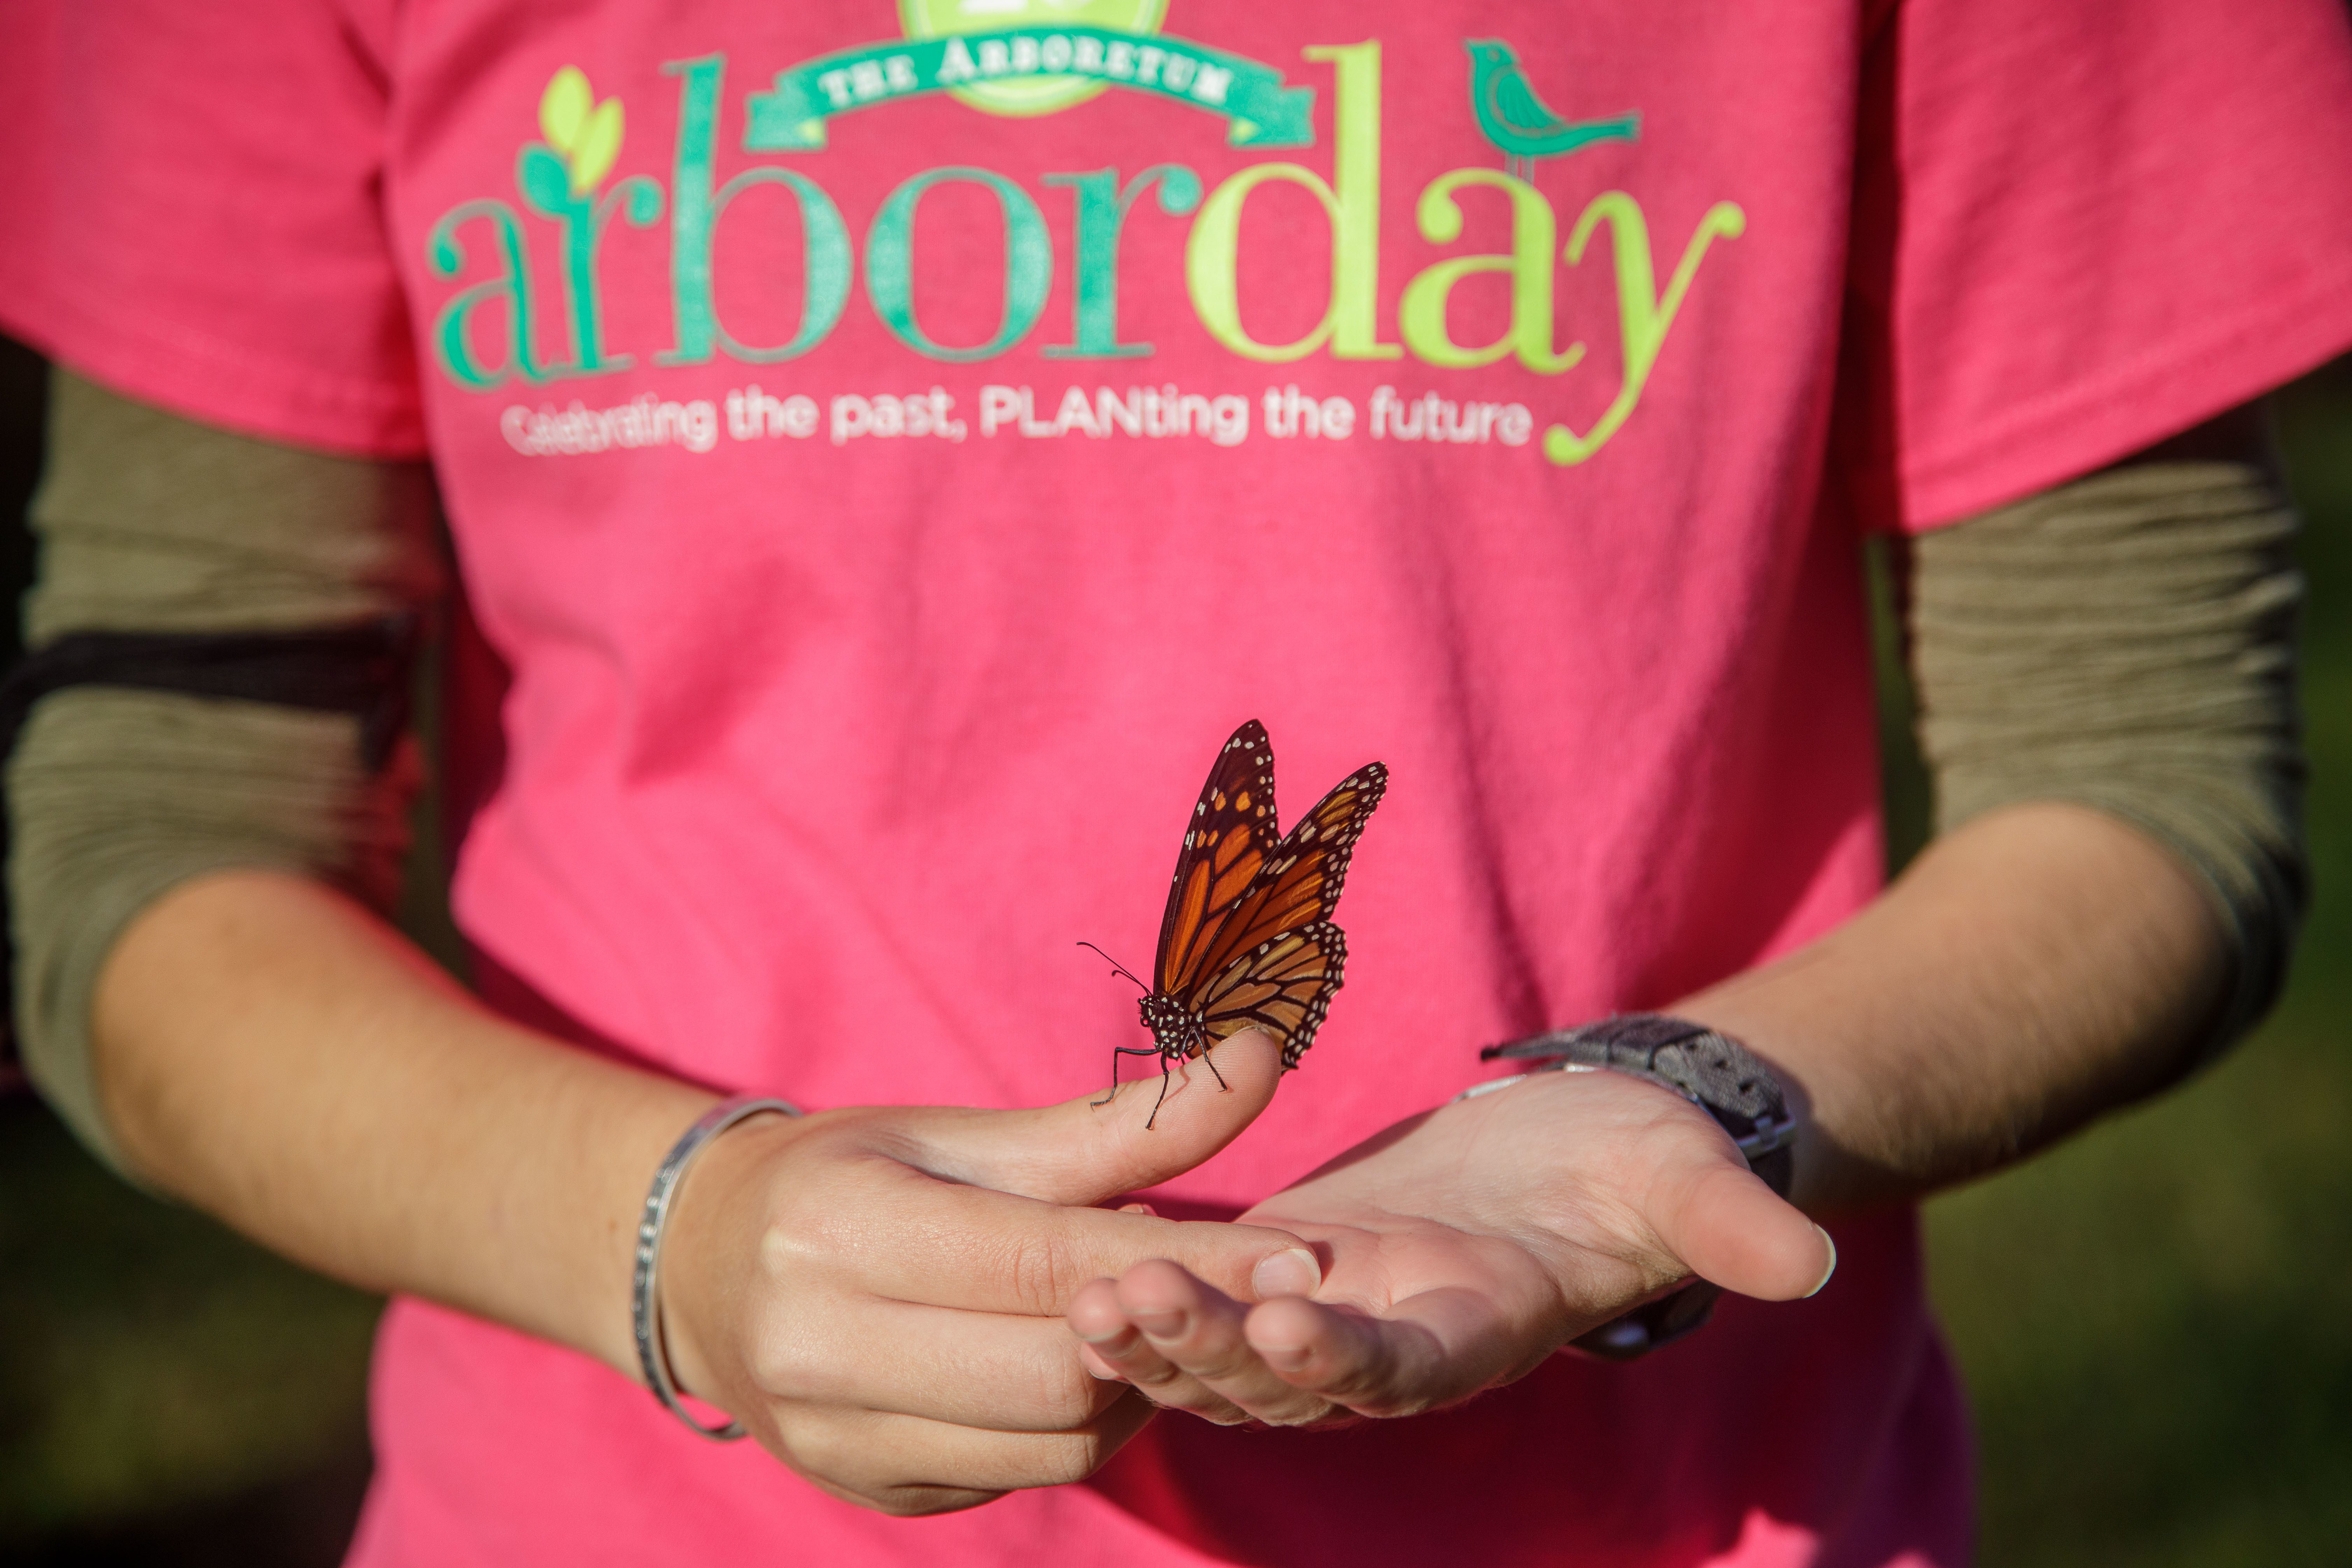 To The Arboretum, every day is Arbor Day